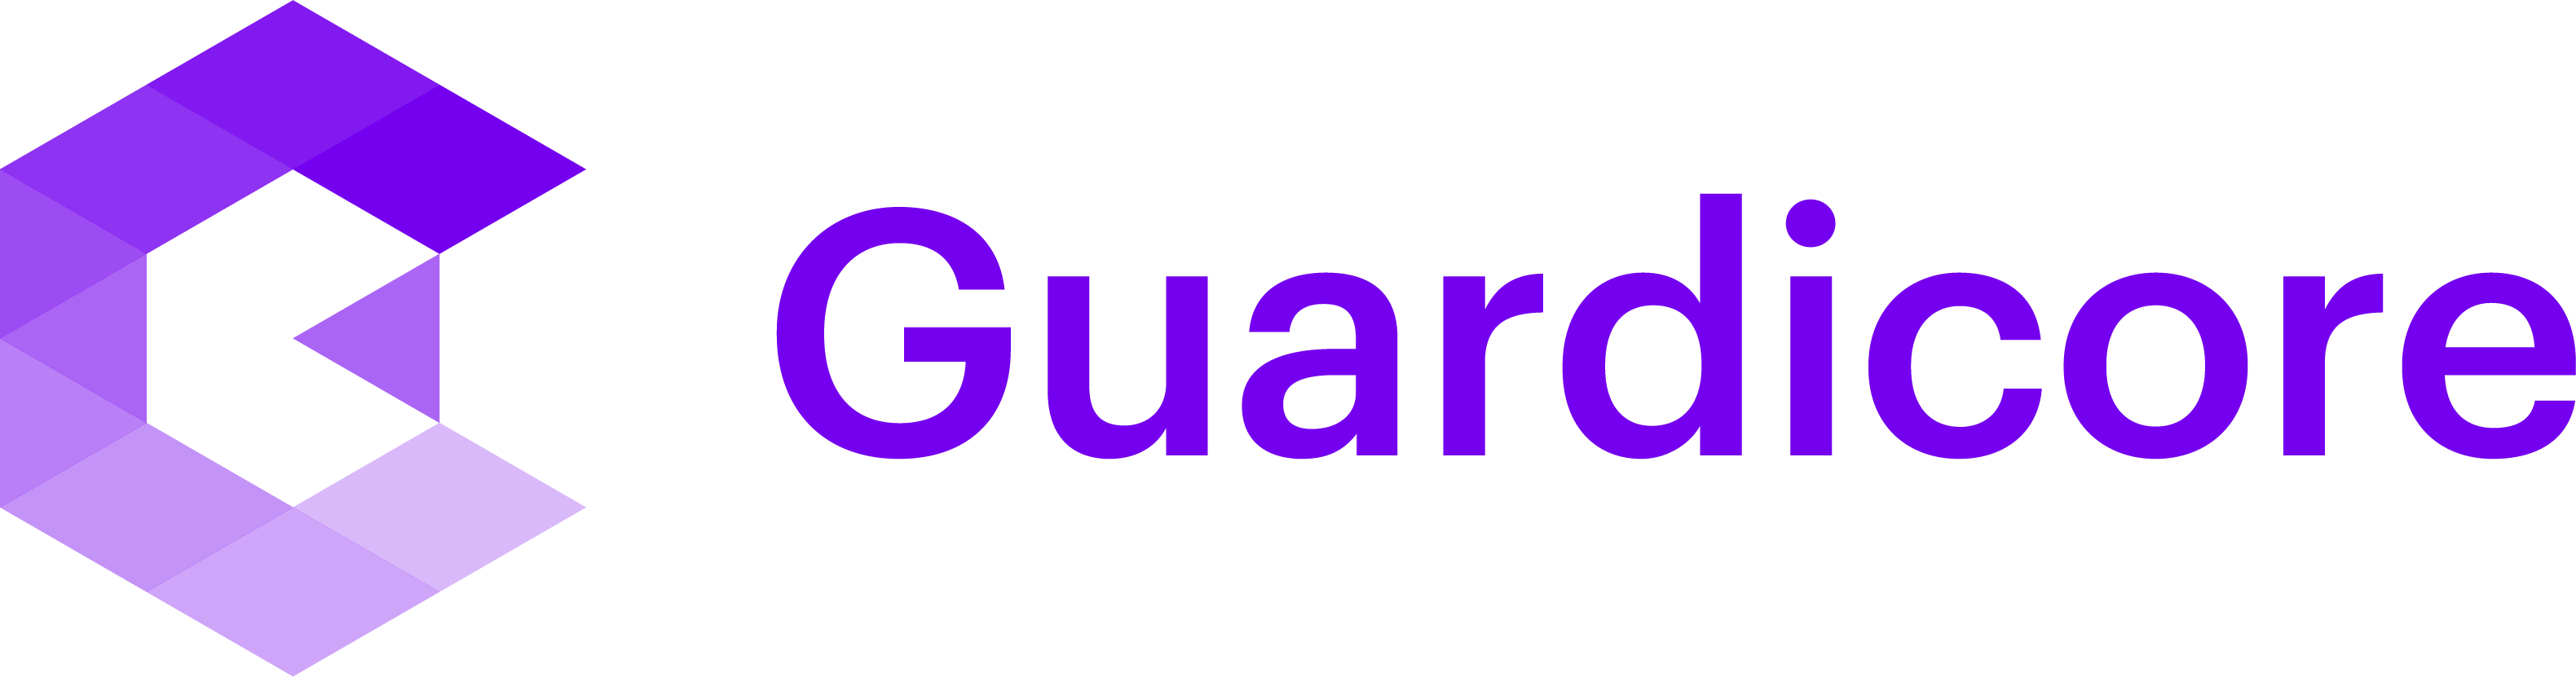 Guardicore New Compatibilities with Citrix® Power Enterprises' Secure Digital Transformation Initiatives